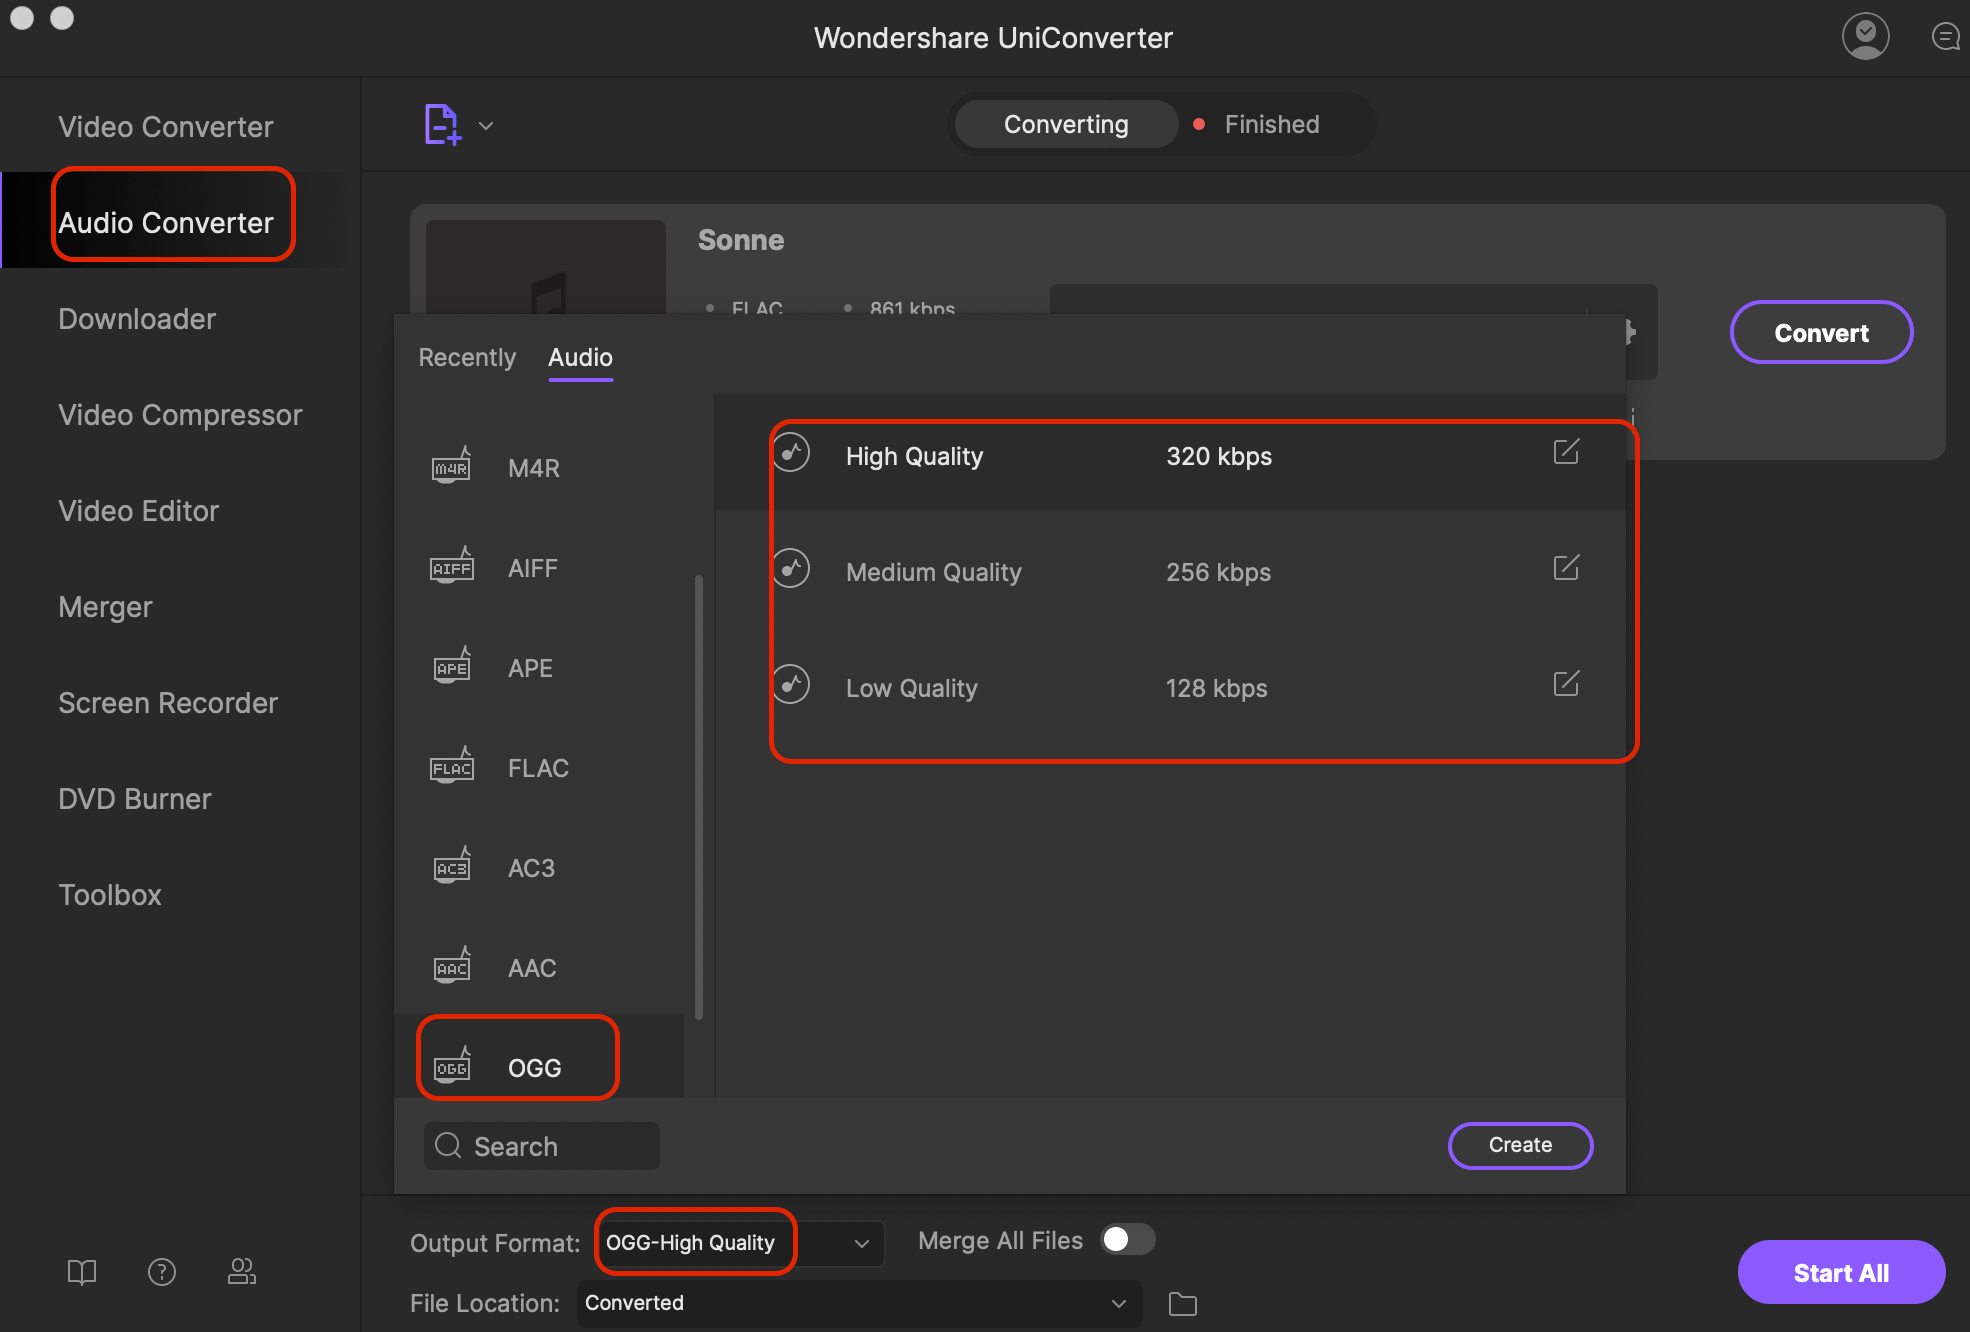 How to Convert OGG to FLAC or Convert FLAC to OGG